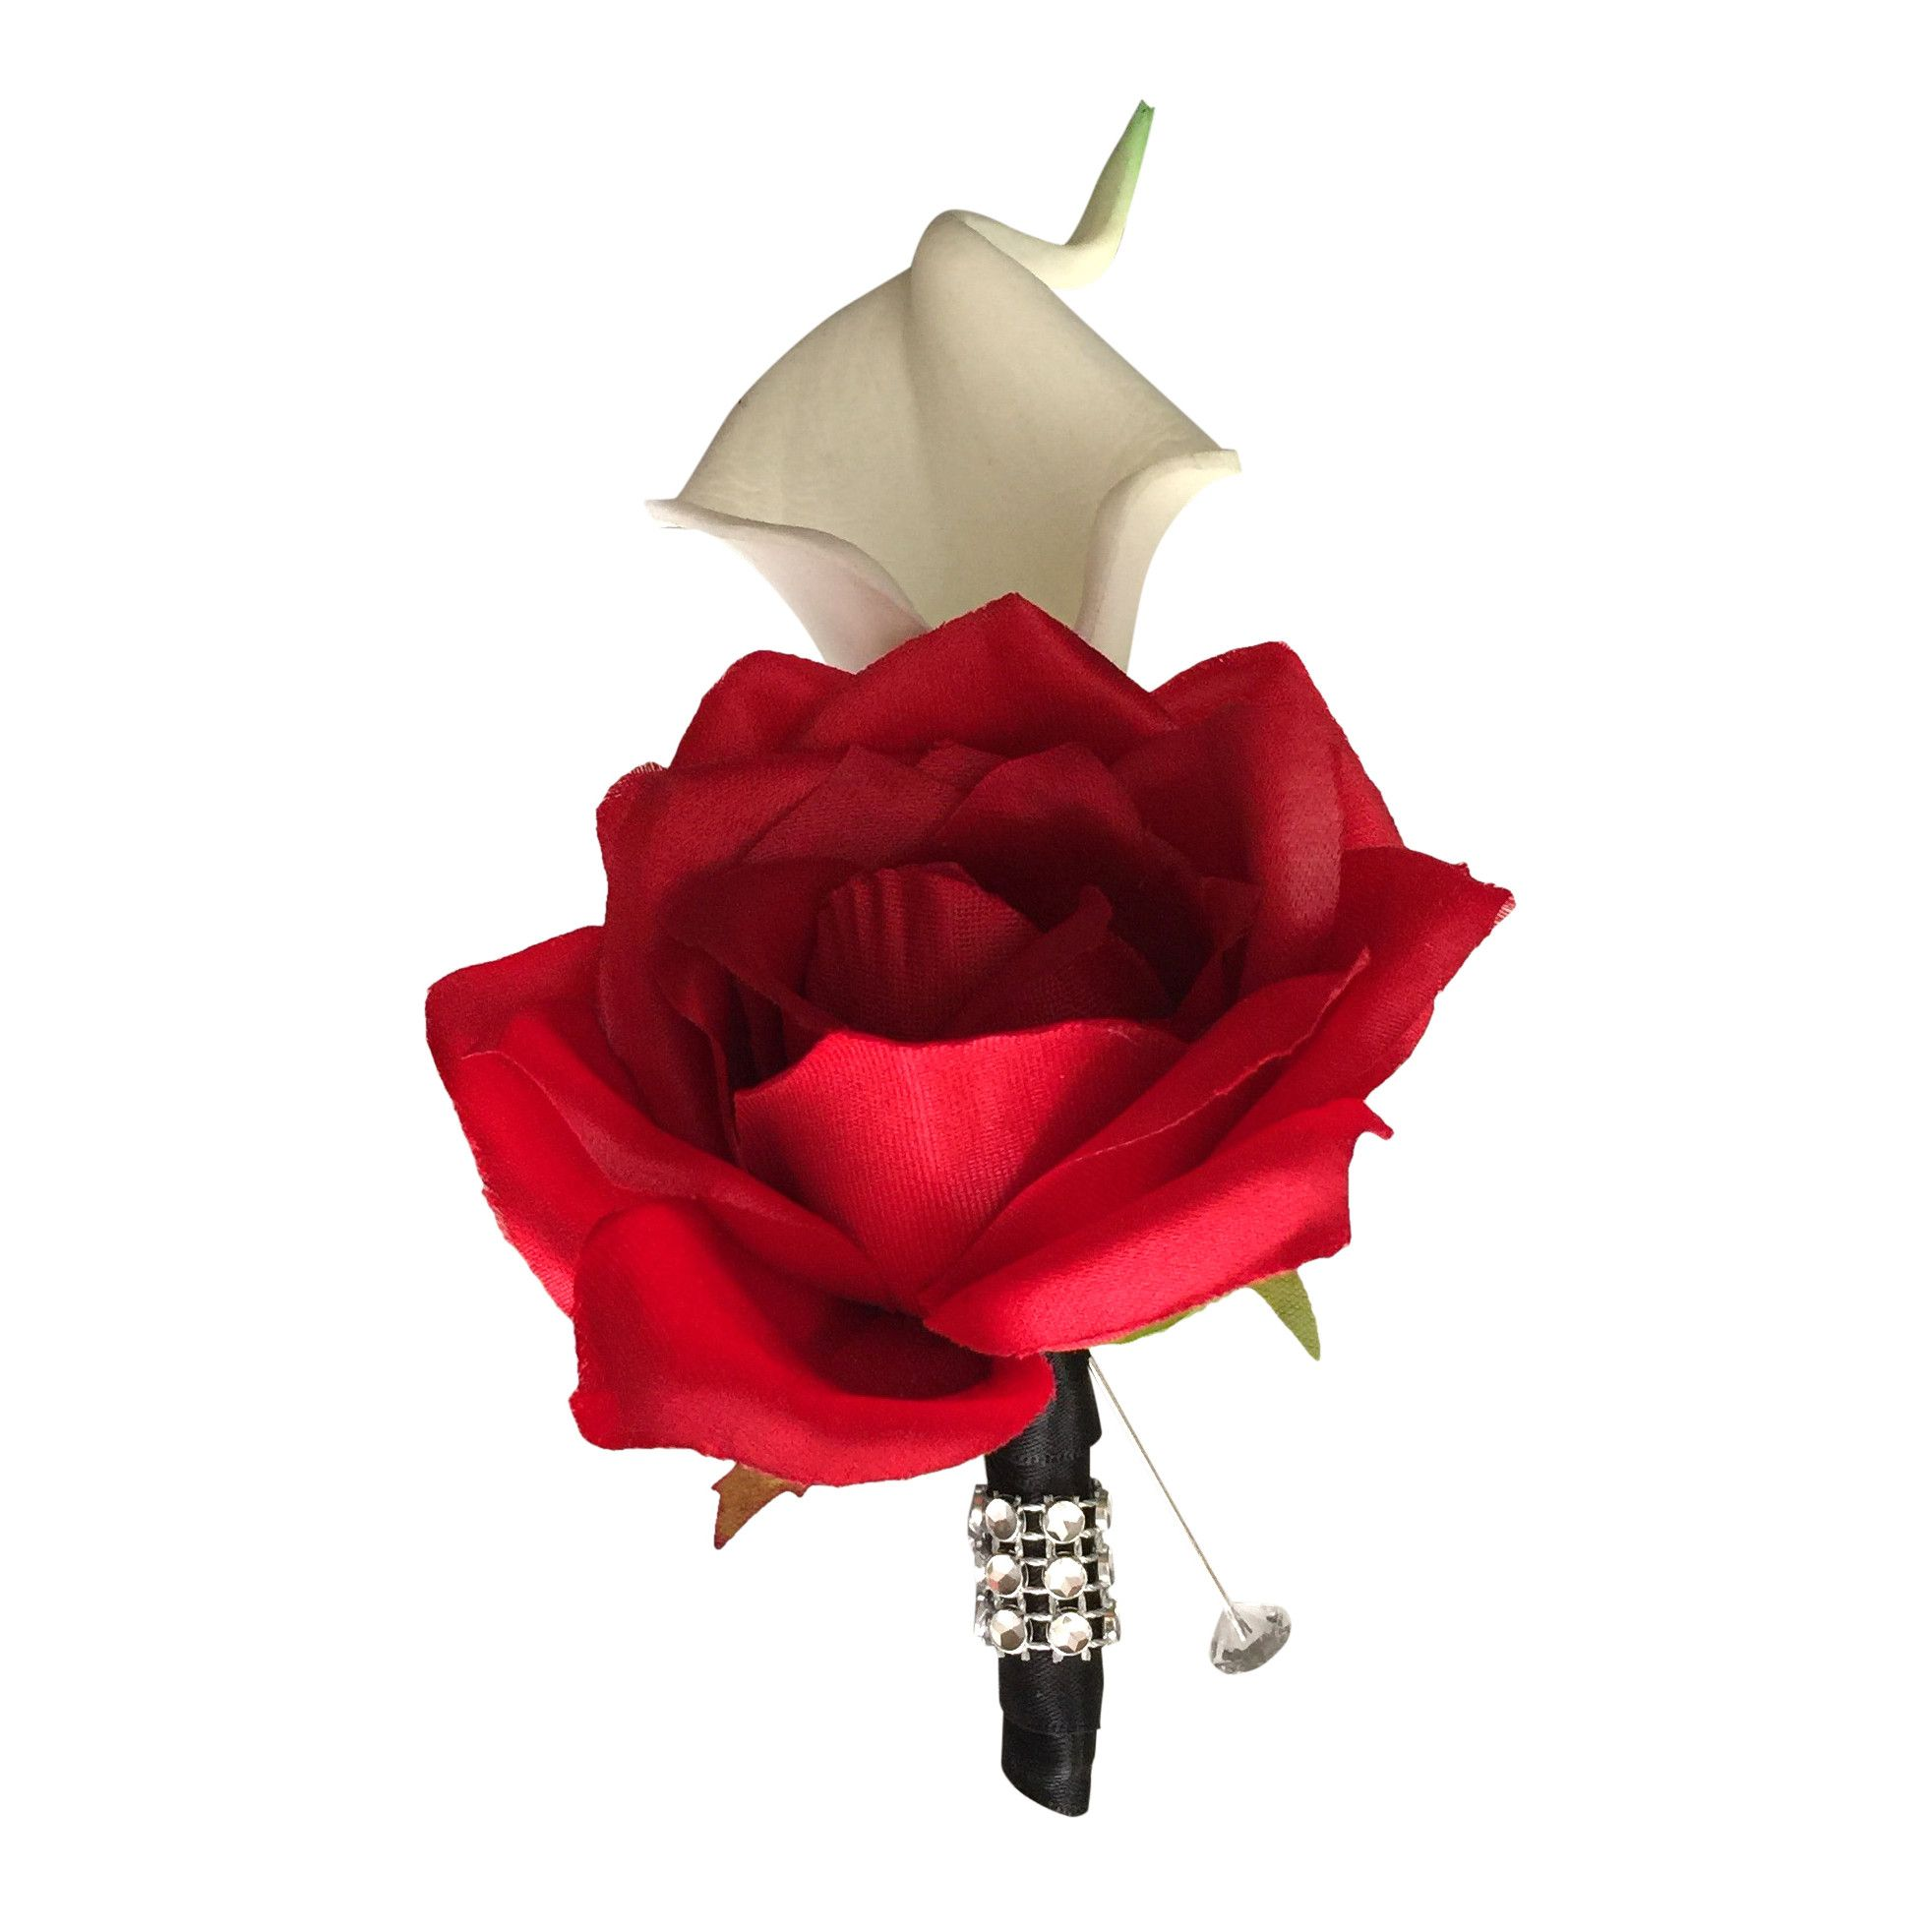 Calla Lily Boutonniere Real Touch Calla Lily With Red Rose Silk